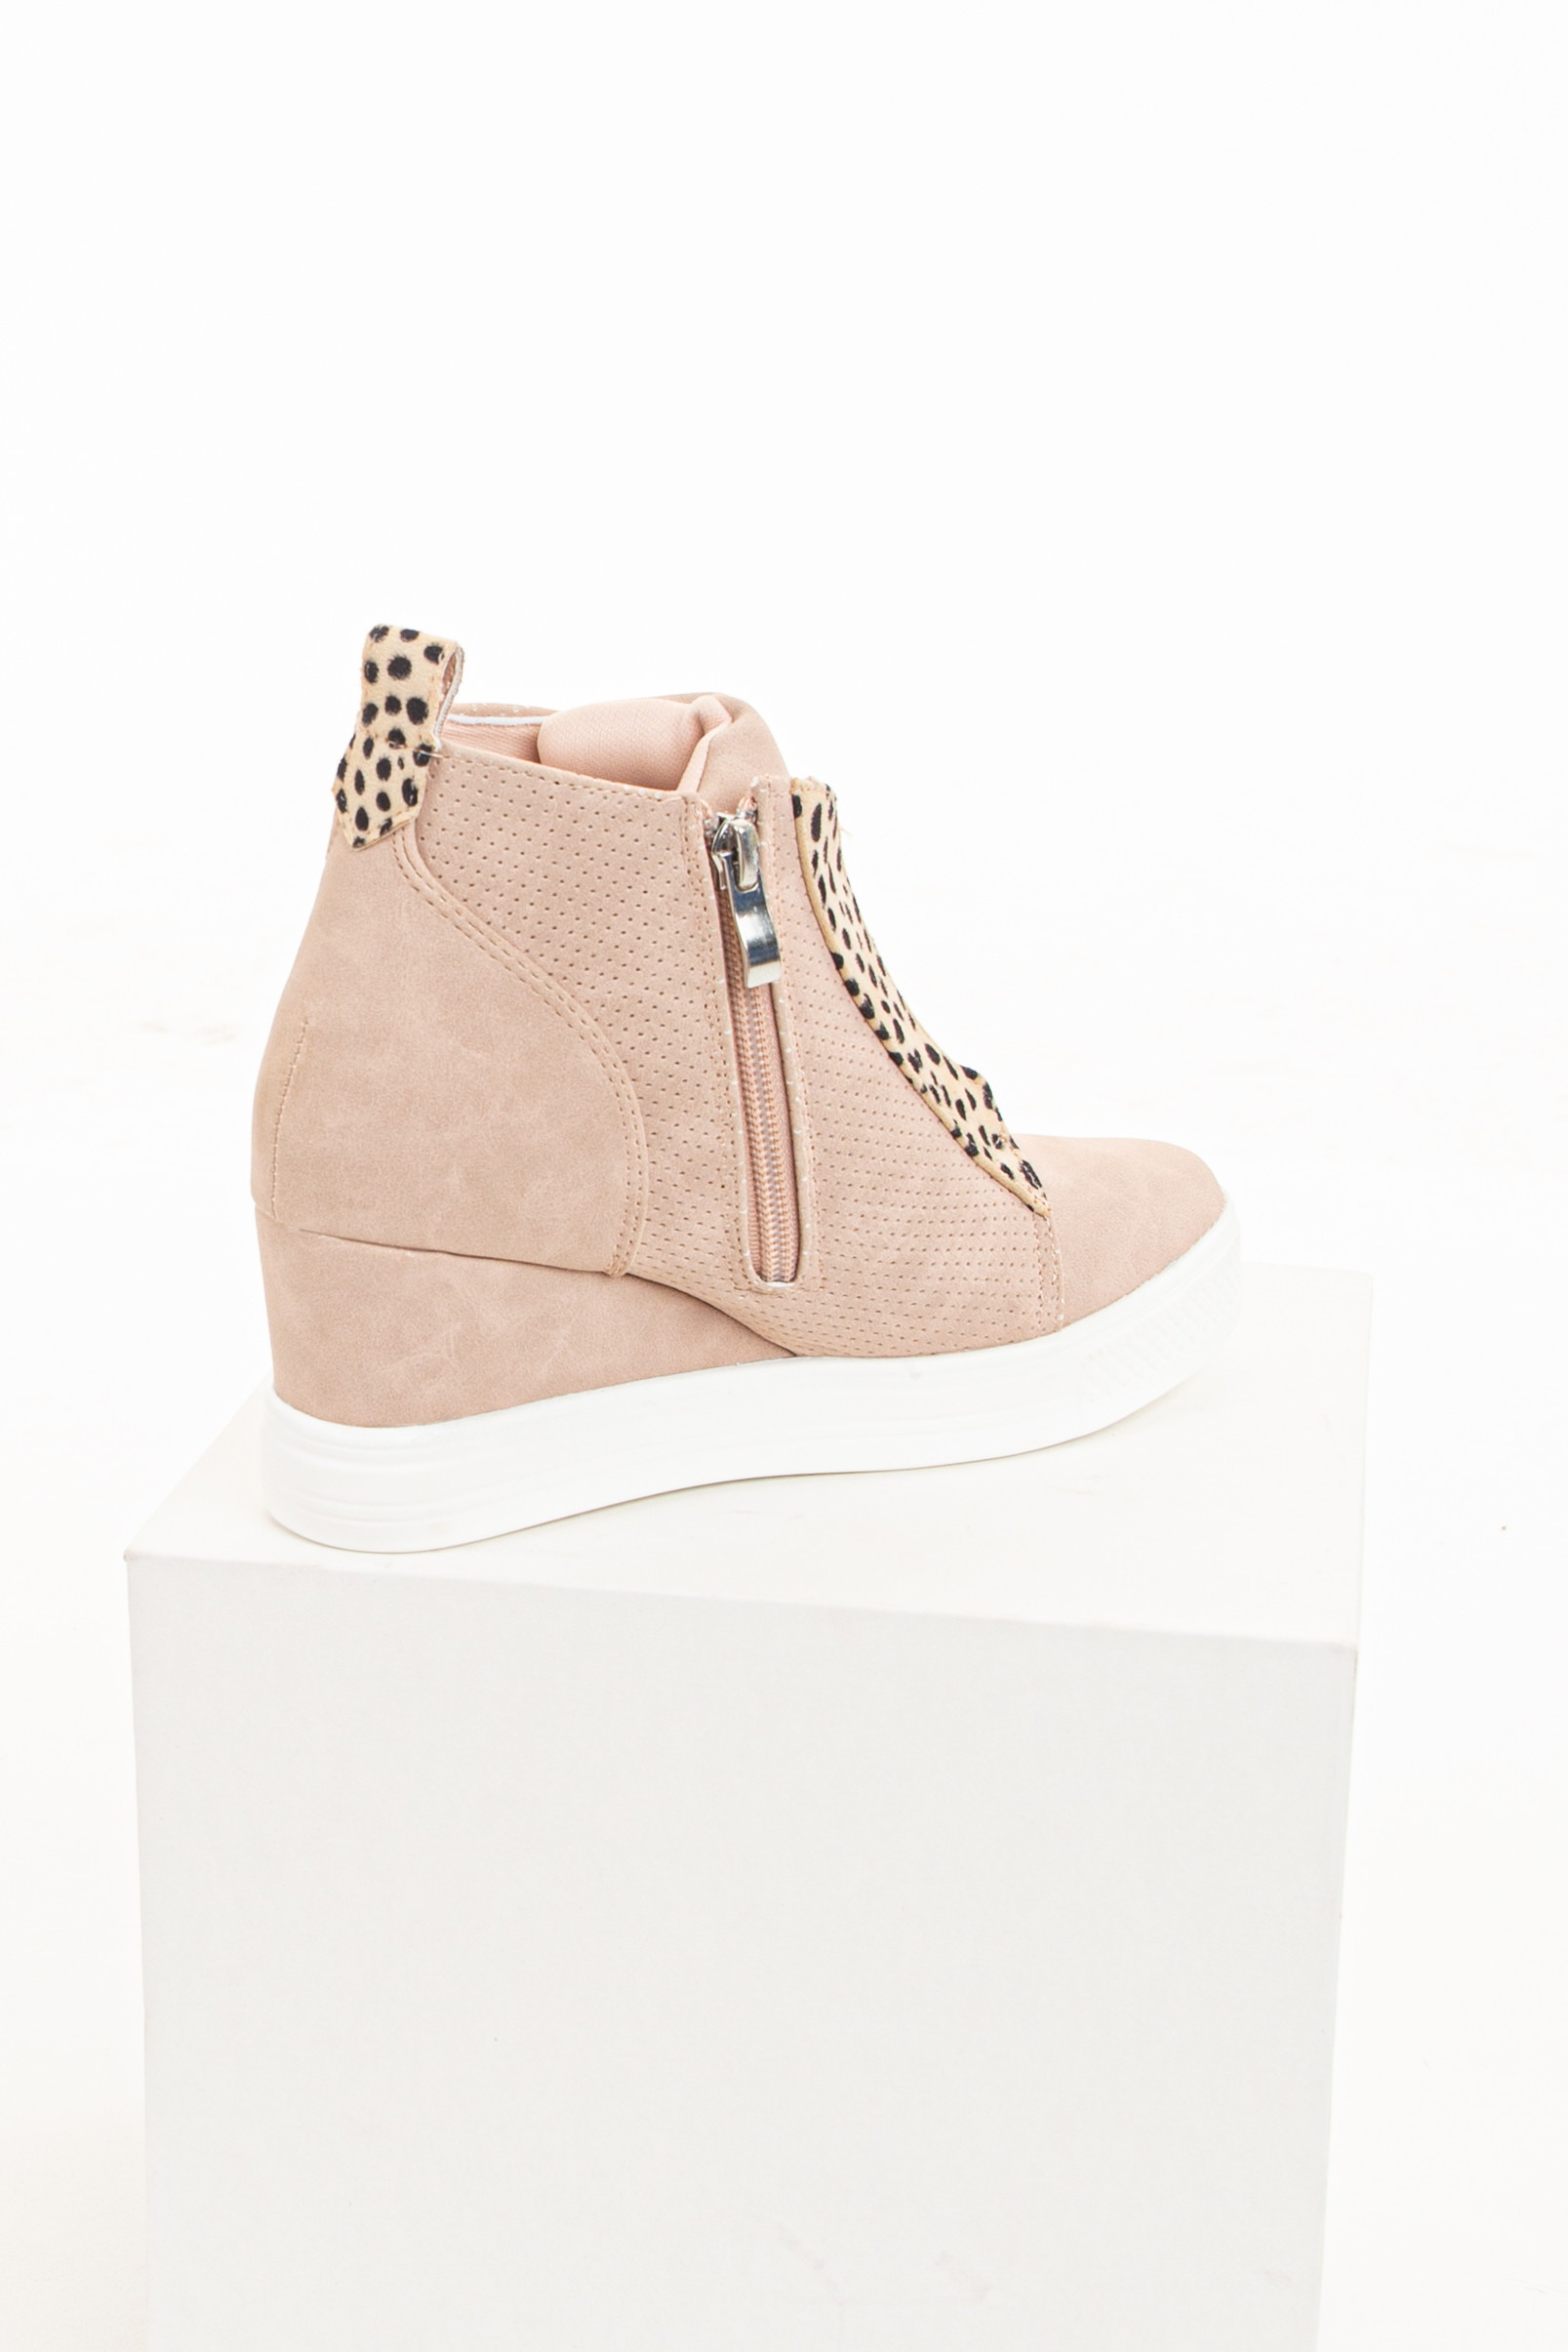 Blush and Cheetah Print Faux Suede Wedge Sneaker